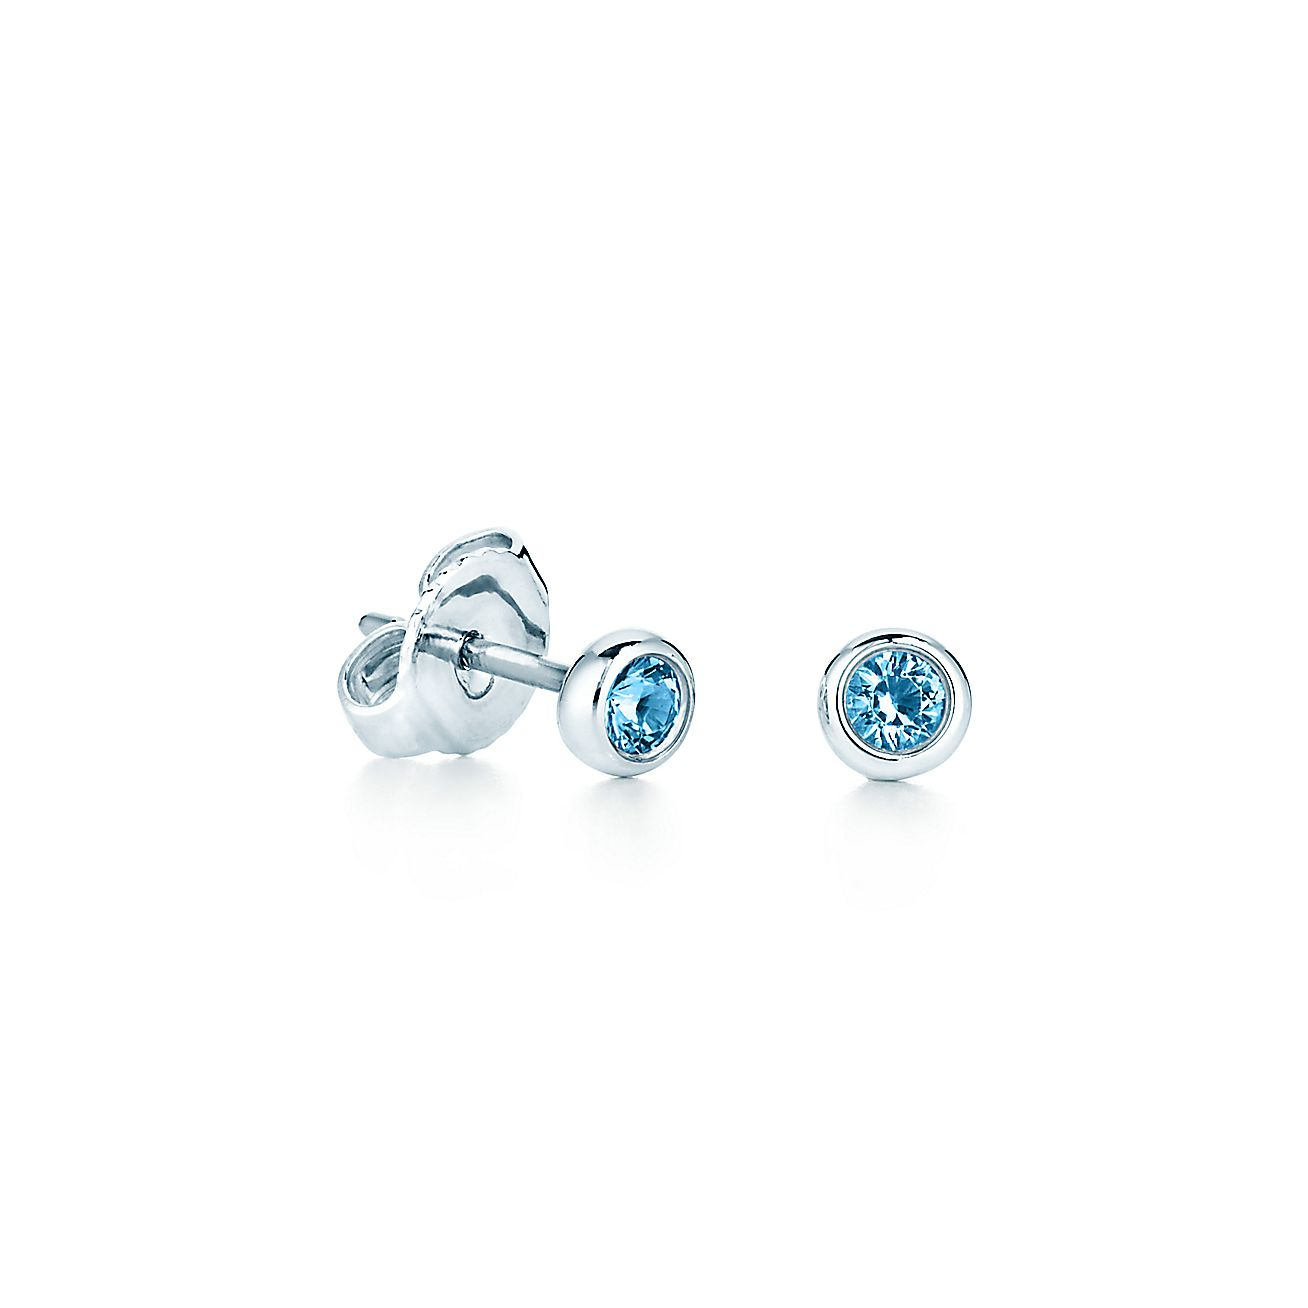 elsa peretti color by the yard earrings in sterling silver with aquamarines tiffany co - Elsa Peretti Color By The Yard Ring